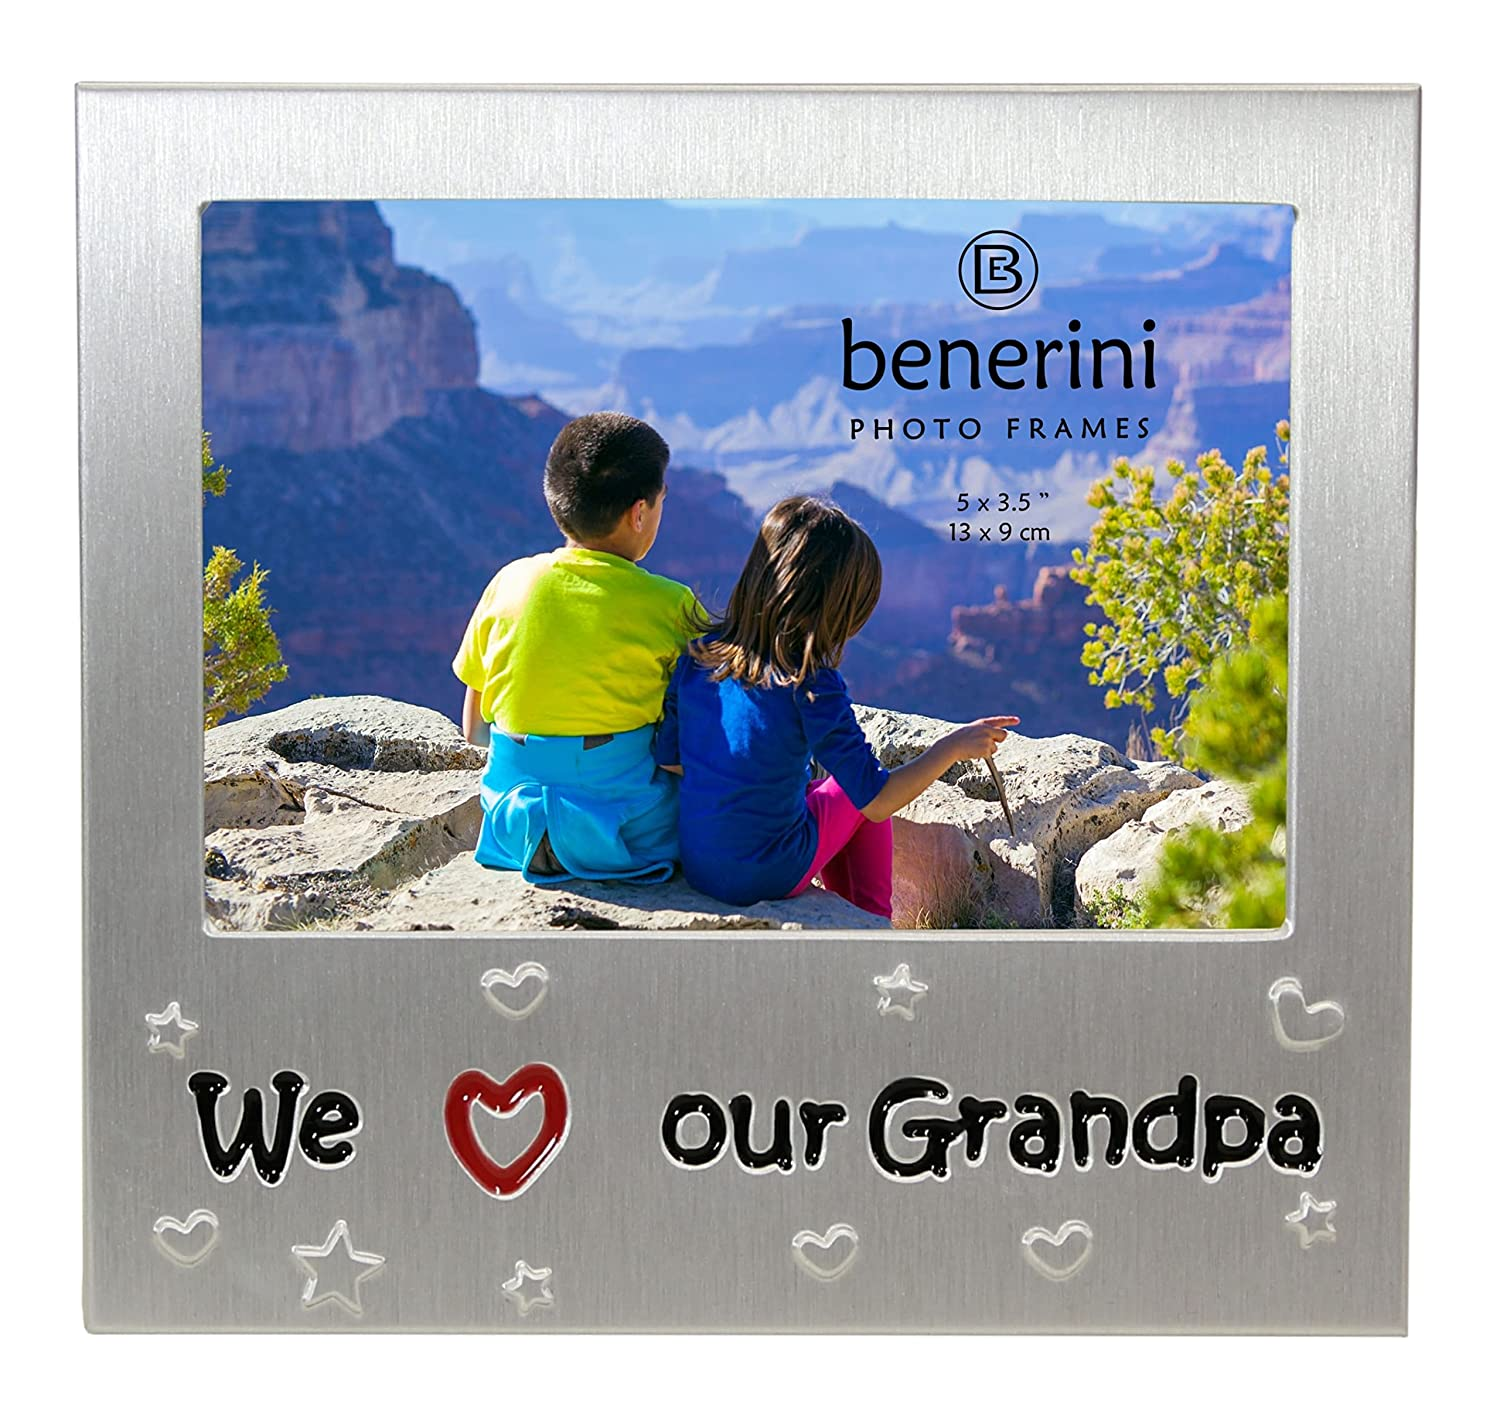 Expressions Photo Picture Frame Gift benerini We Love Our Grandpa Brushed Aluminum Satin Silver Colour Expressions Photo Frames 5 x 3.5